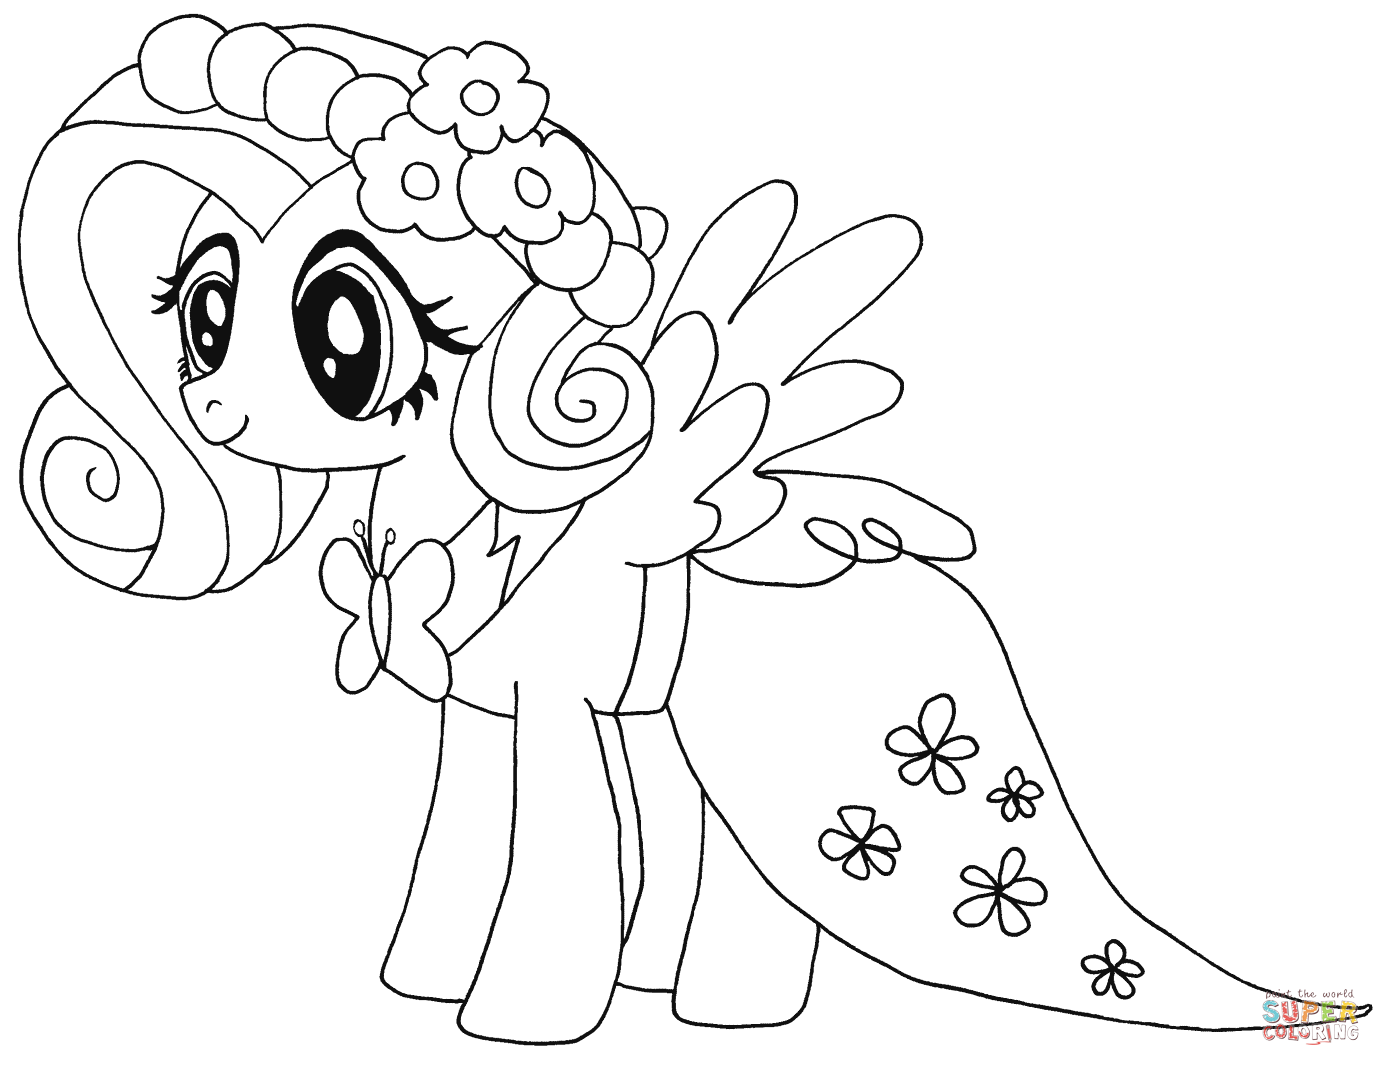 Ausmalbilder My Little Pony Pinkie Pie : 40 Printable My Little Pony Coloring Pages